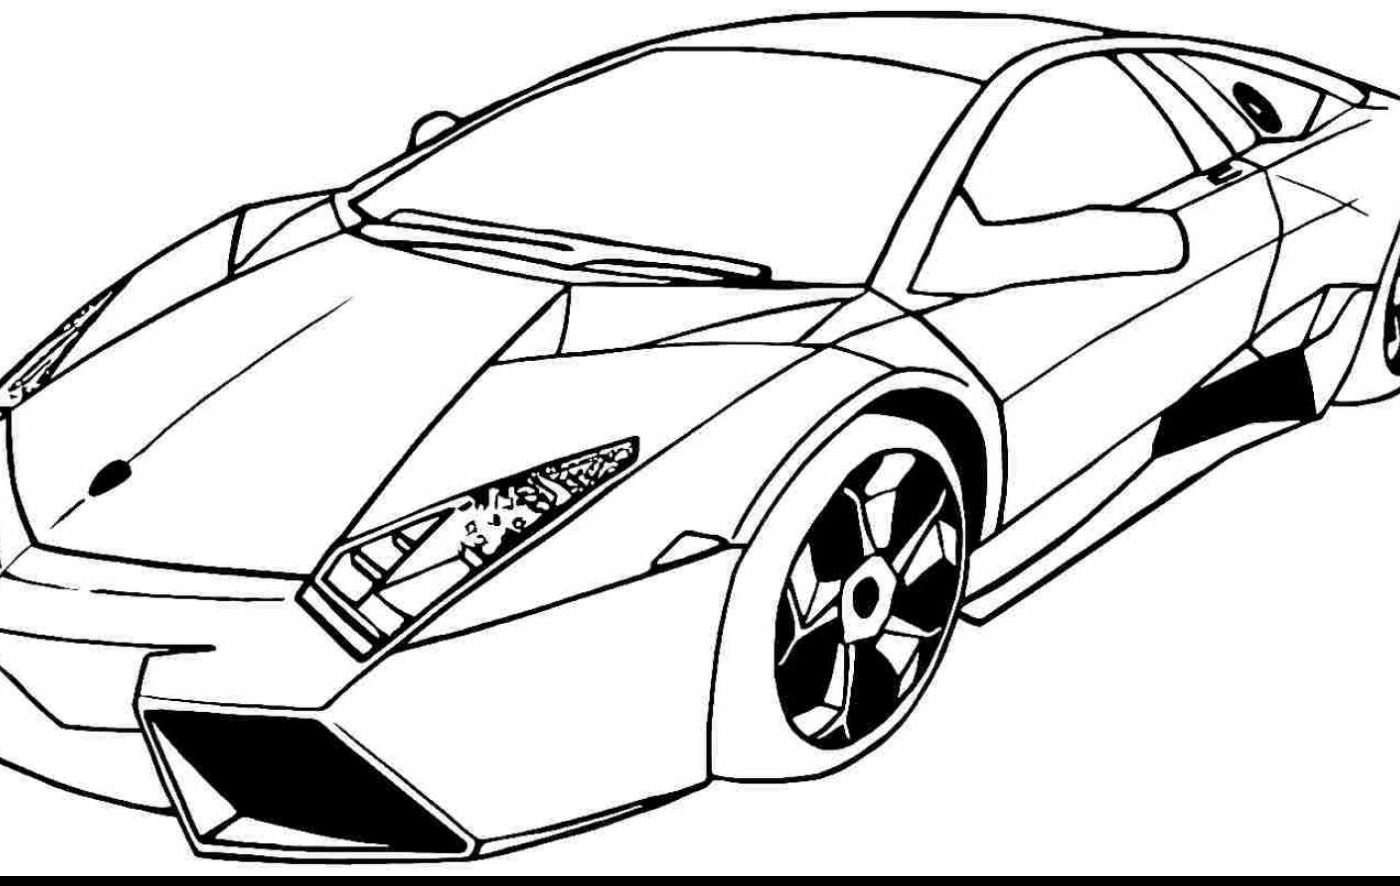 1400x886 Lego Moto Police Car Coloring Pages Printable Best Of Page General